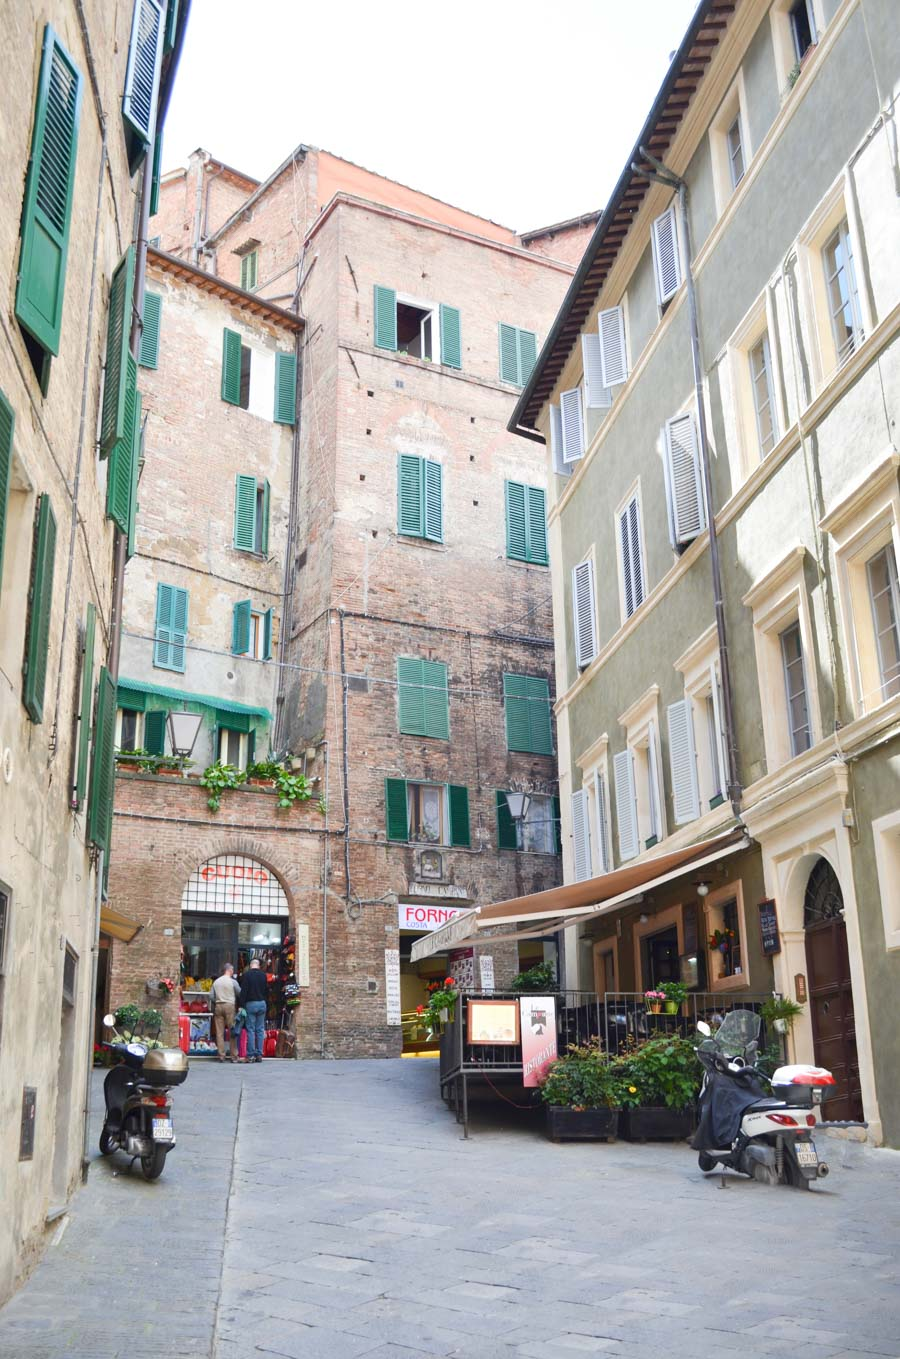 One Night in Siena Travel Guide